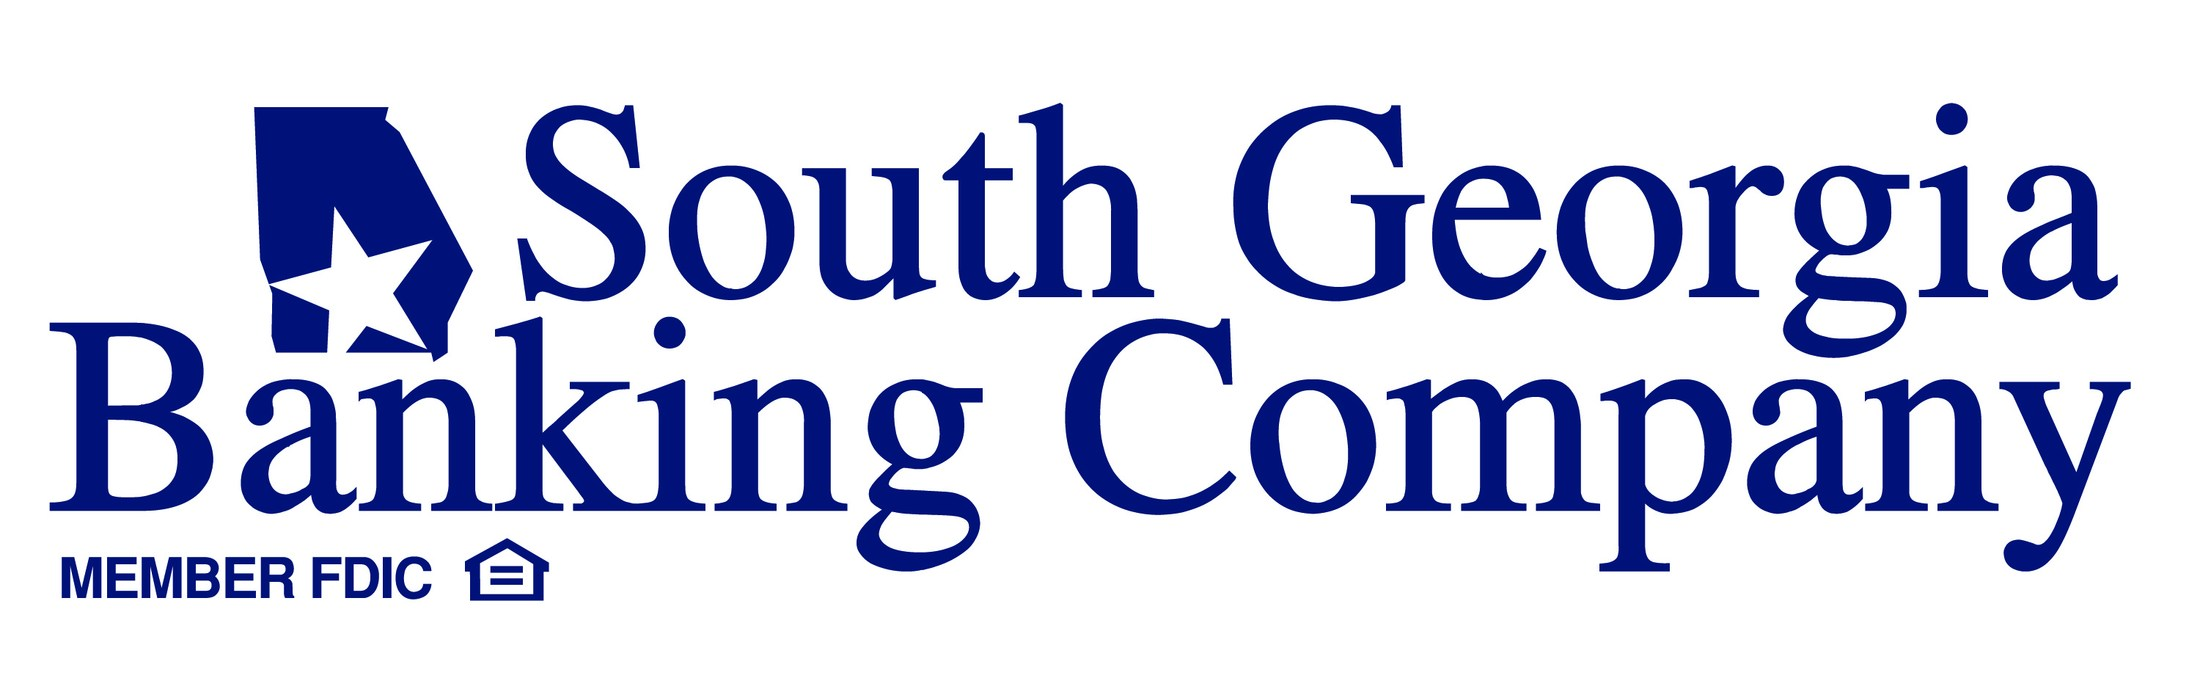 South Georgia Banking Company logo